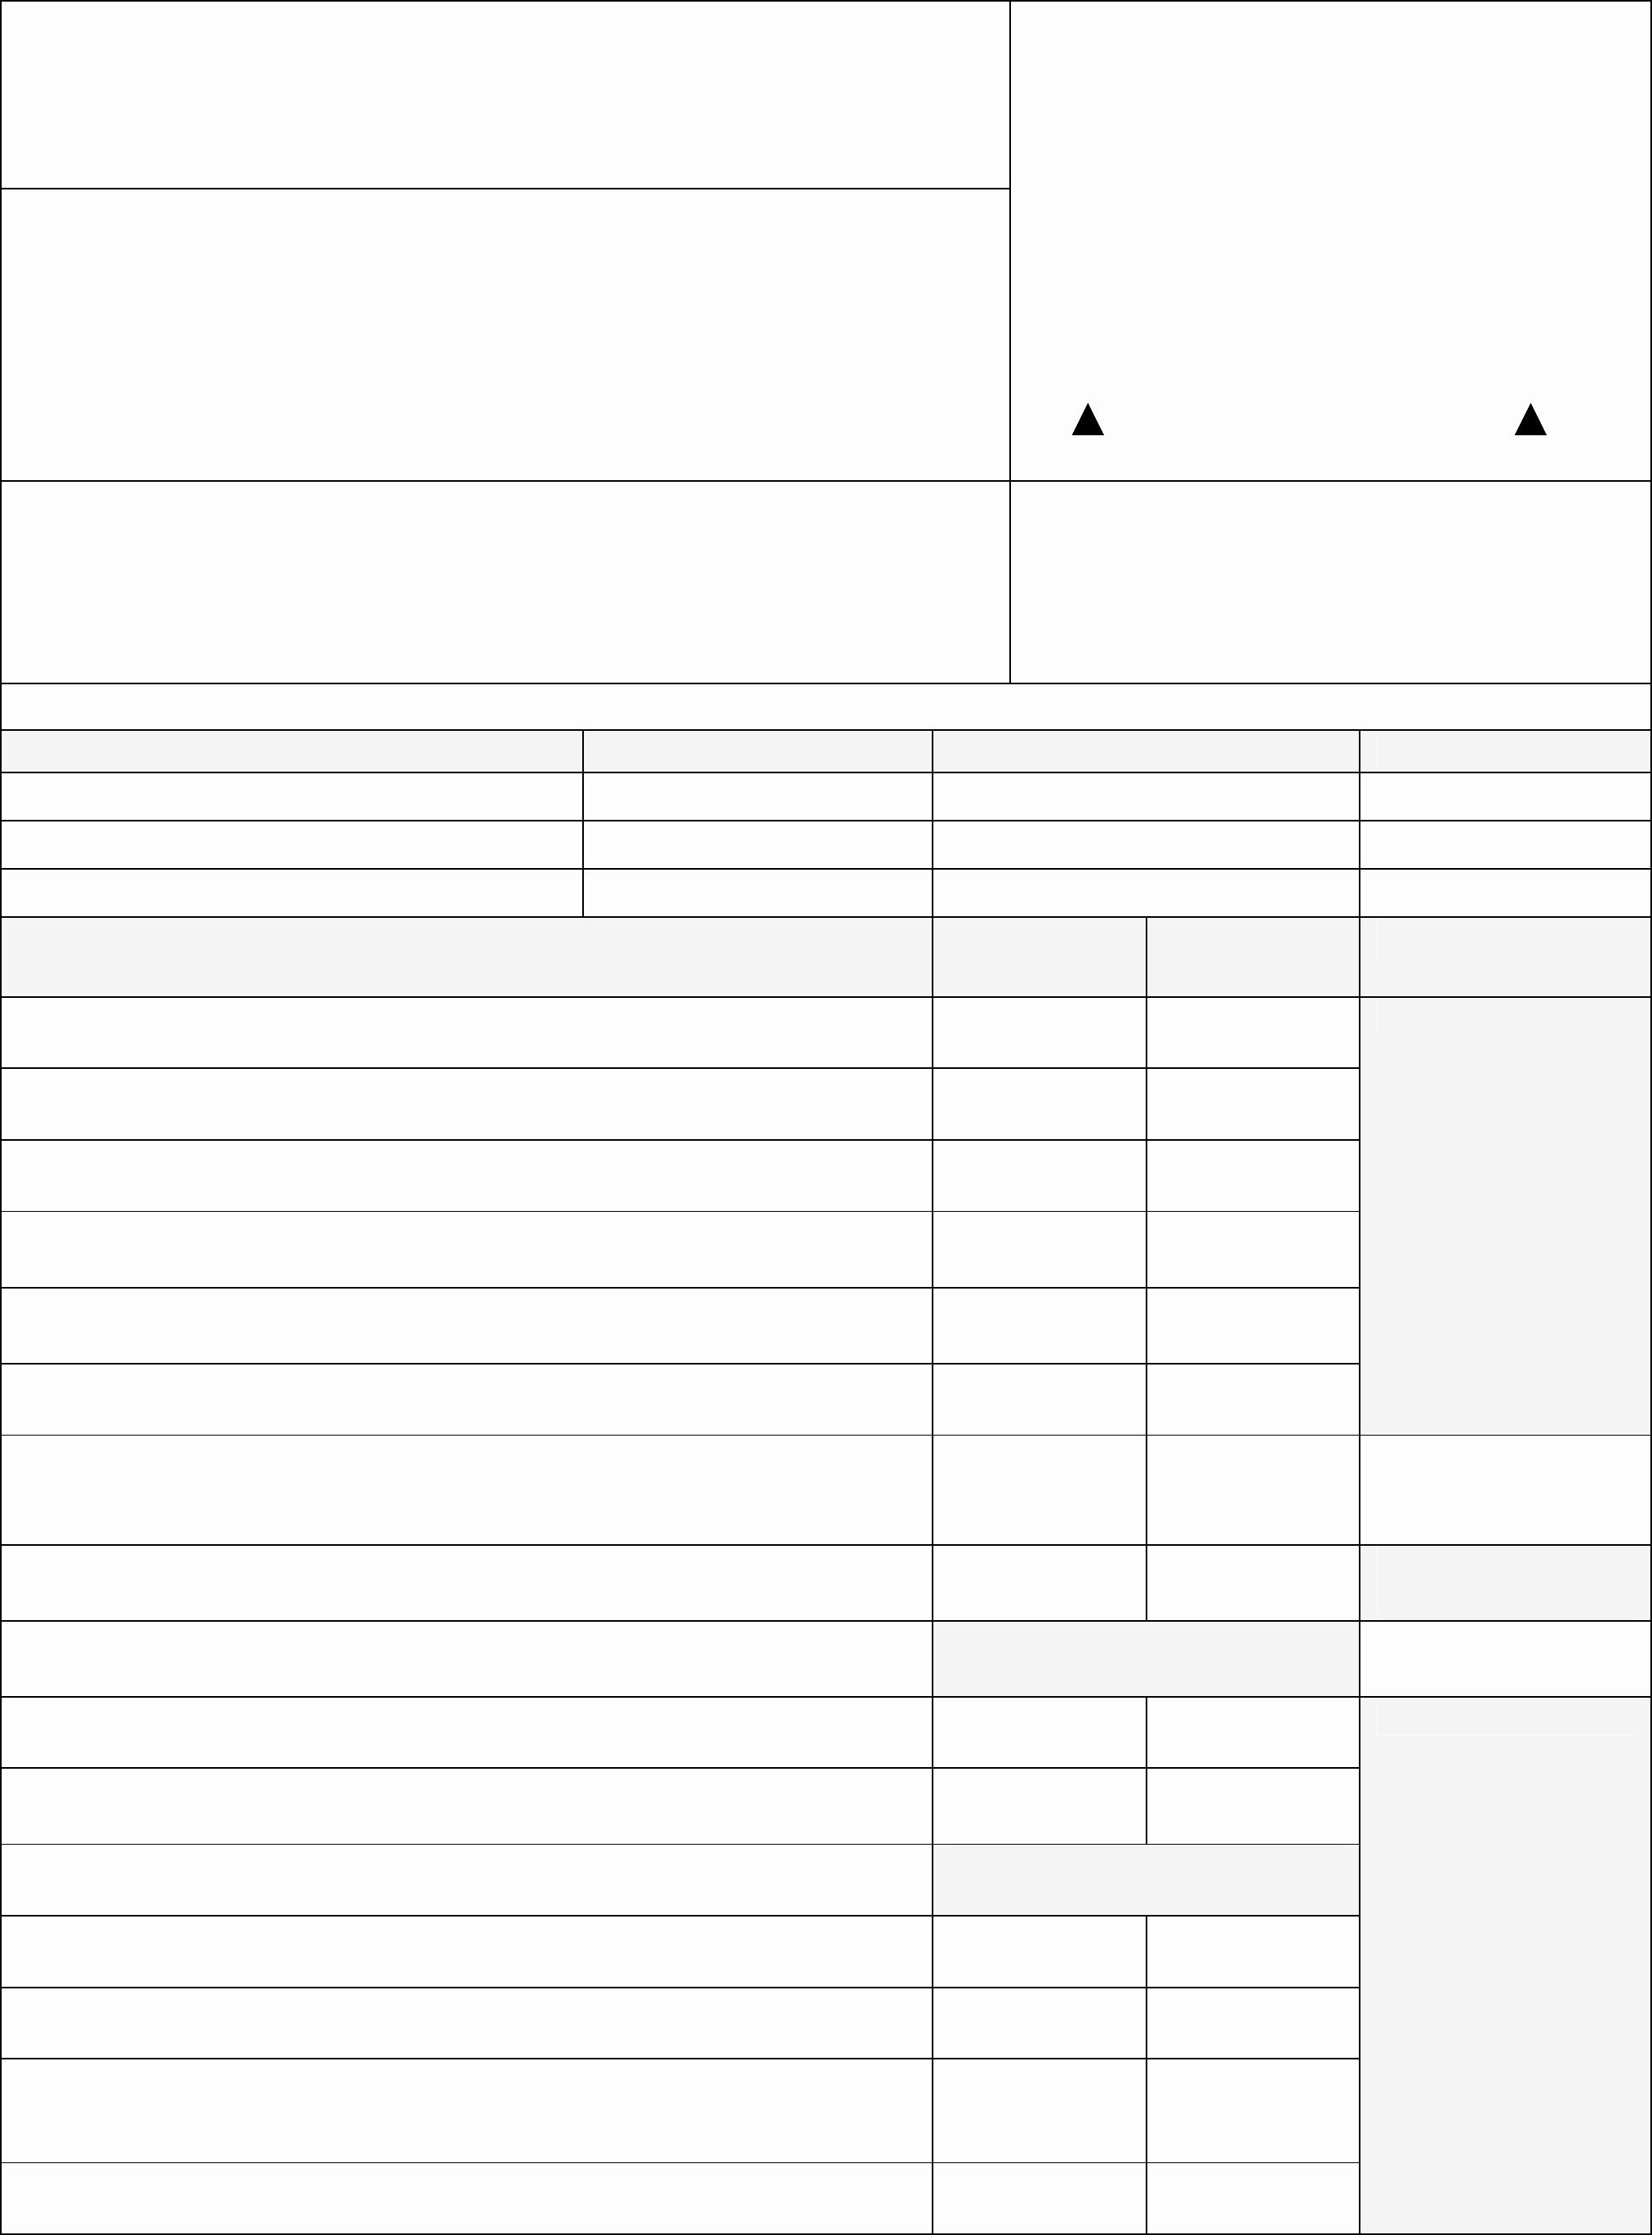 Kansas Child Support Worksheet Excel Best Of Document